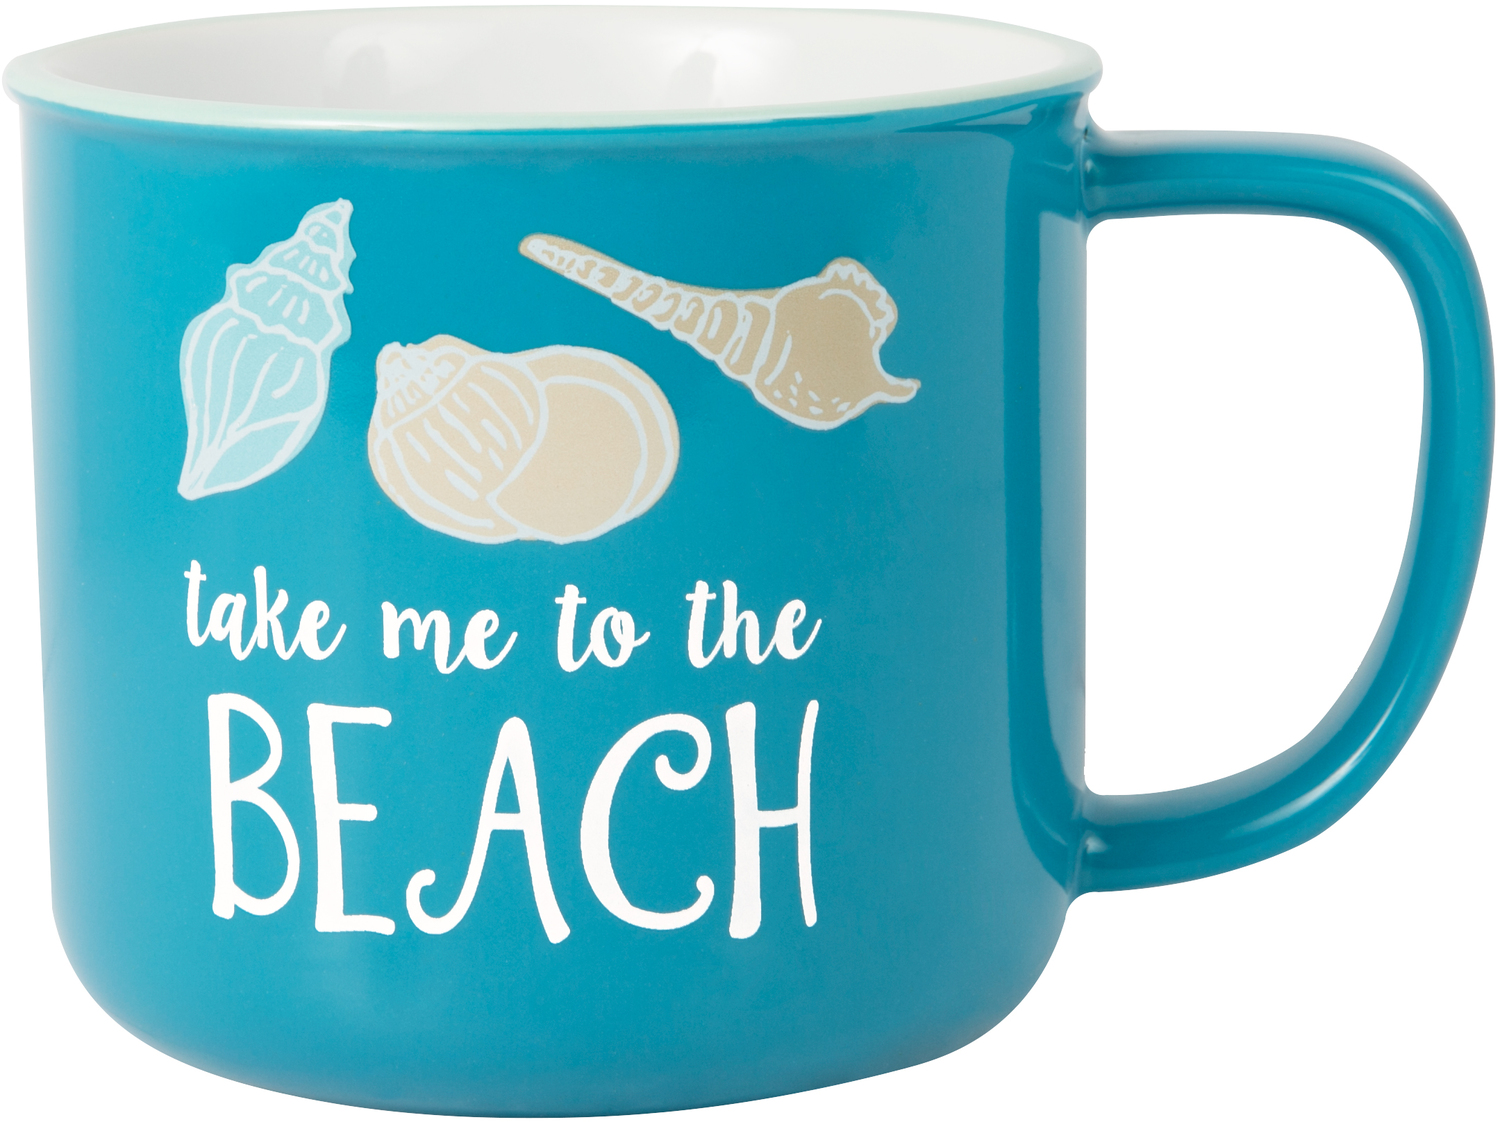 To the Beach by We People - To the Beach - 17 oz Mug